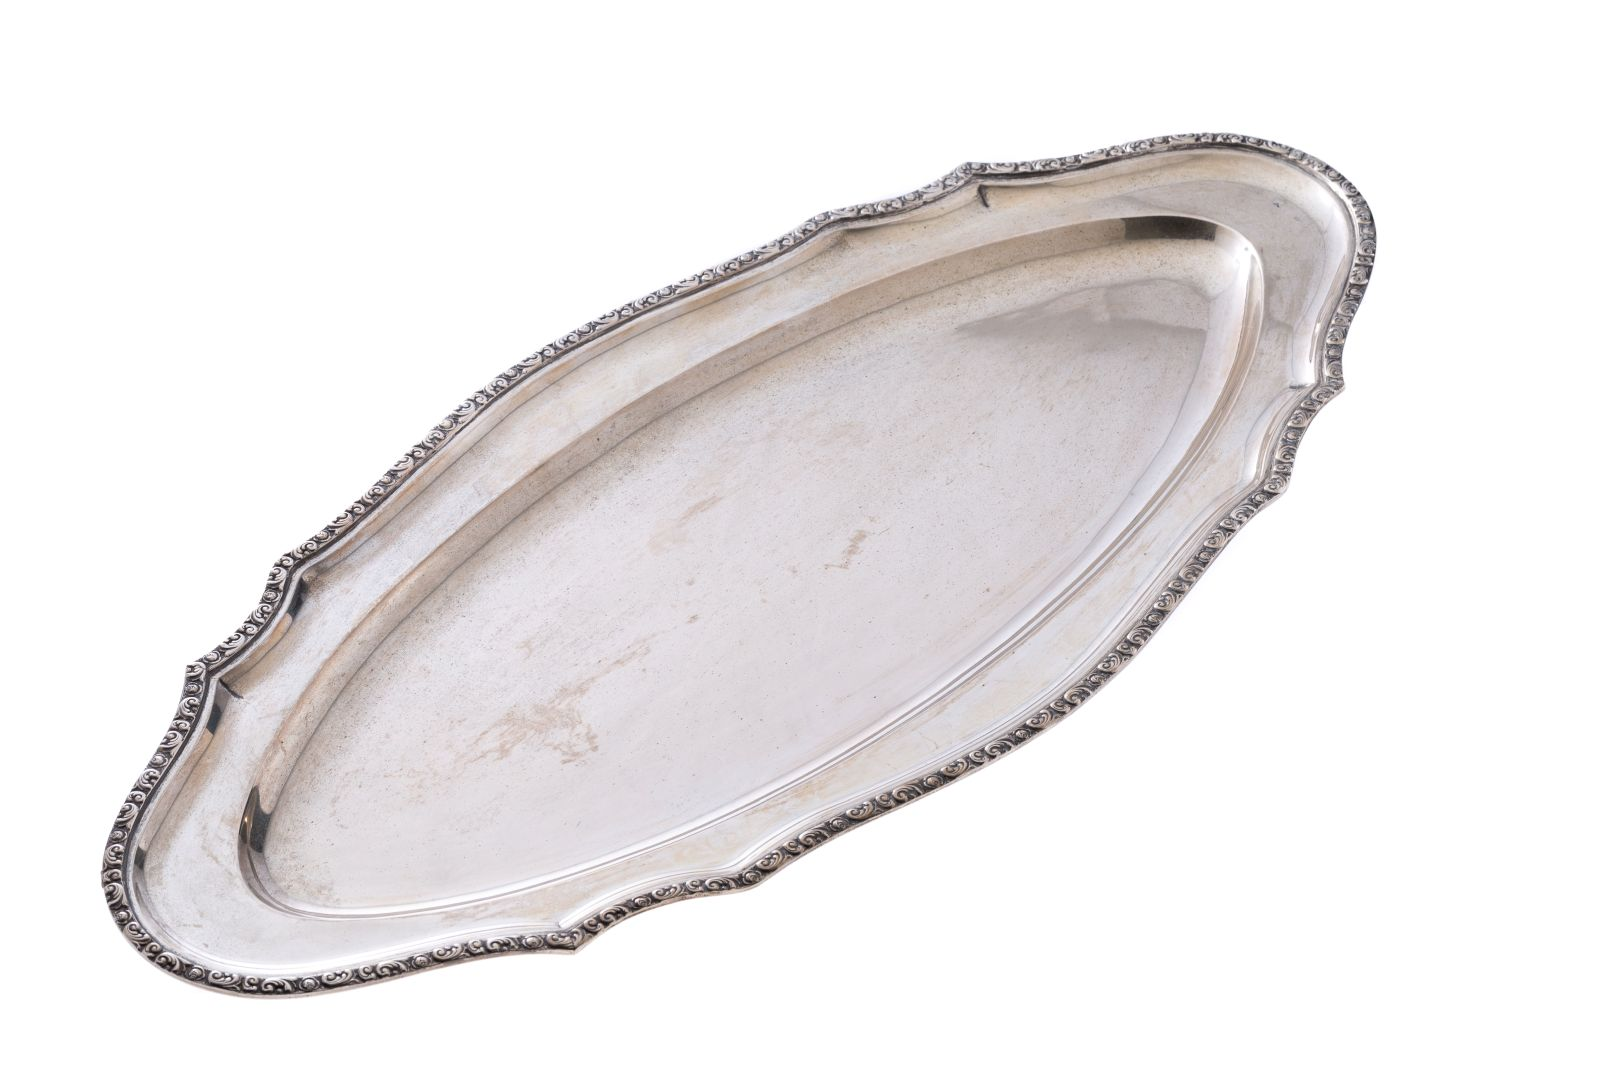 #134 Silver fish plate   Fischplatte Image